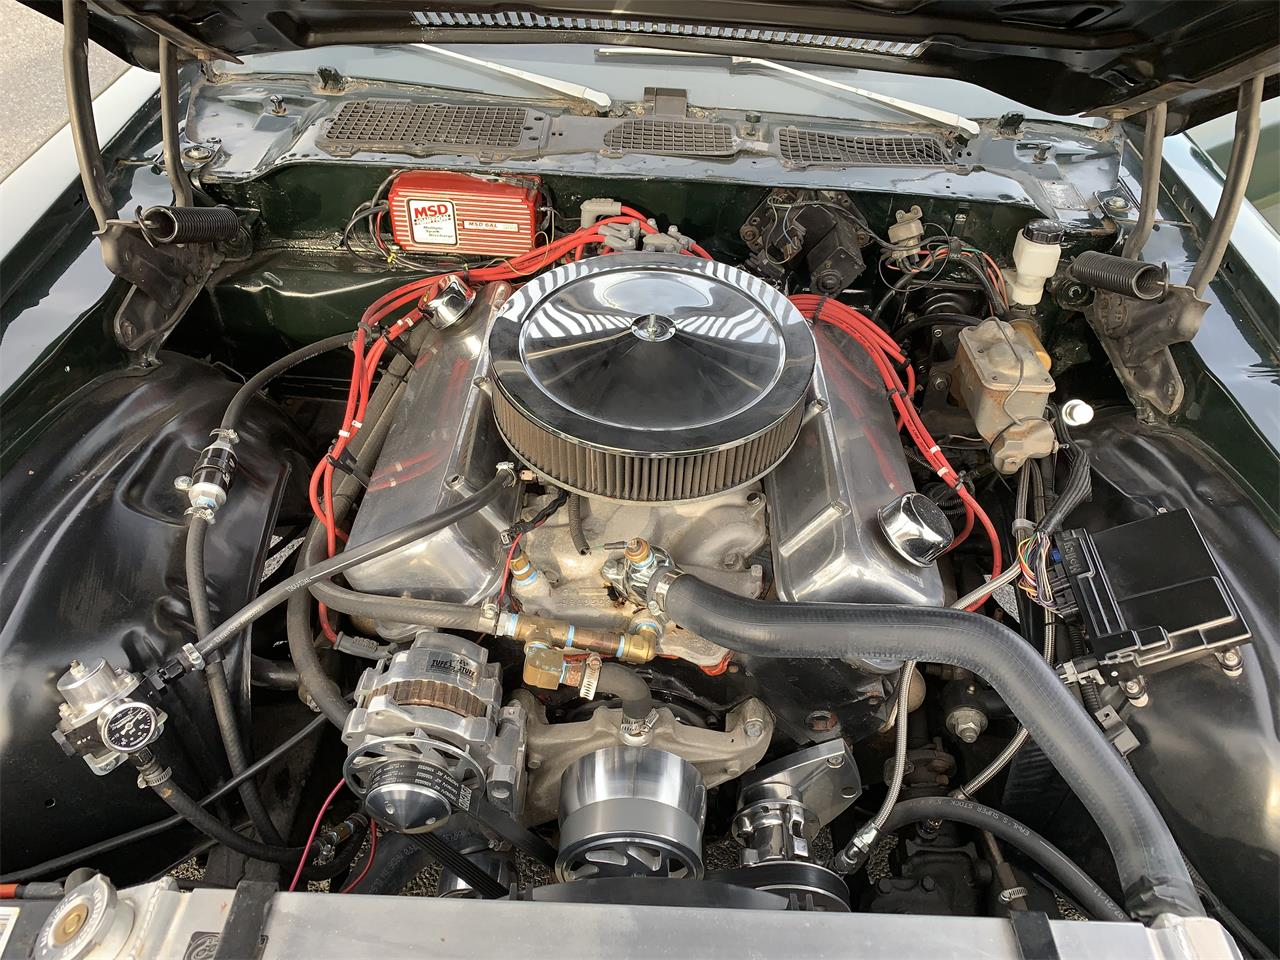 Large Picture of 1973 Chevrolet Camaro Z28 located in Pennsylvania - $29,900.00 Offered by a Private Seller - PZBW